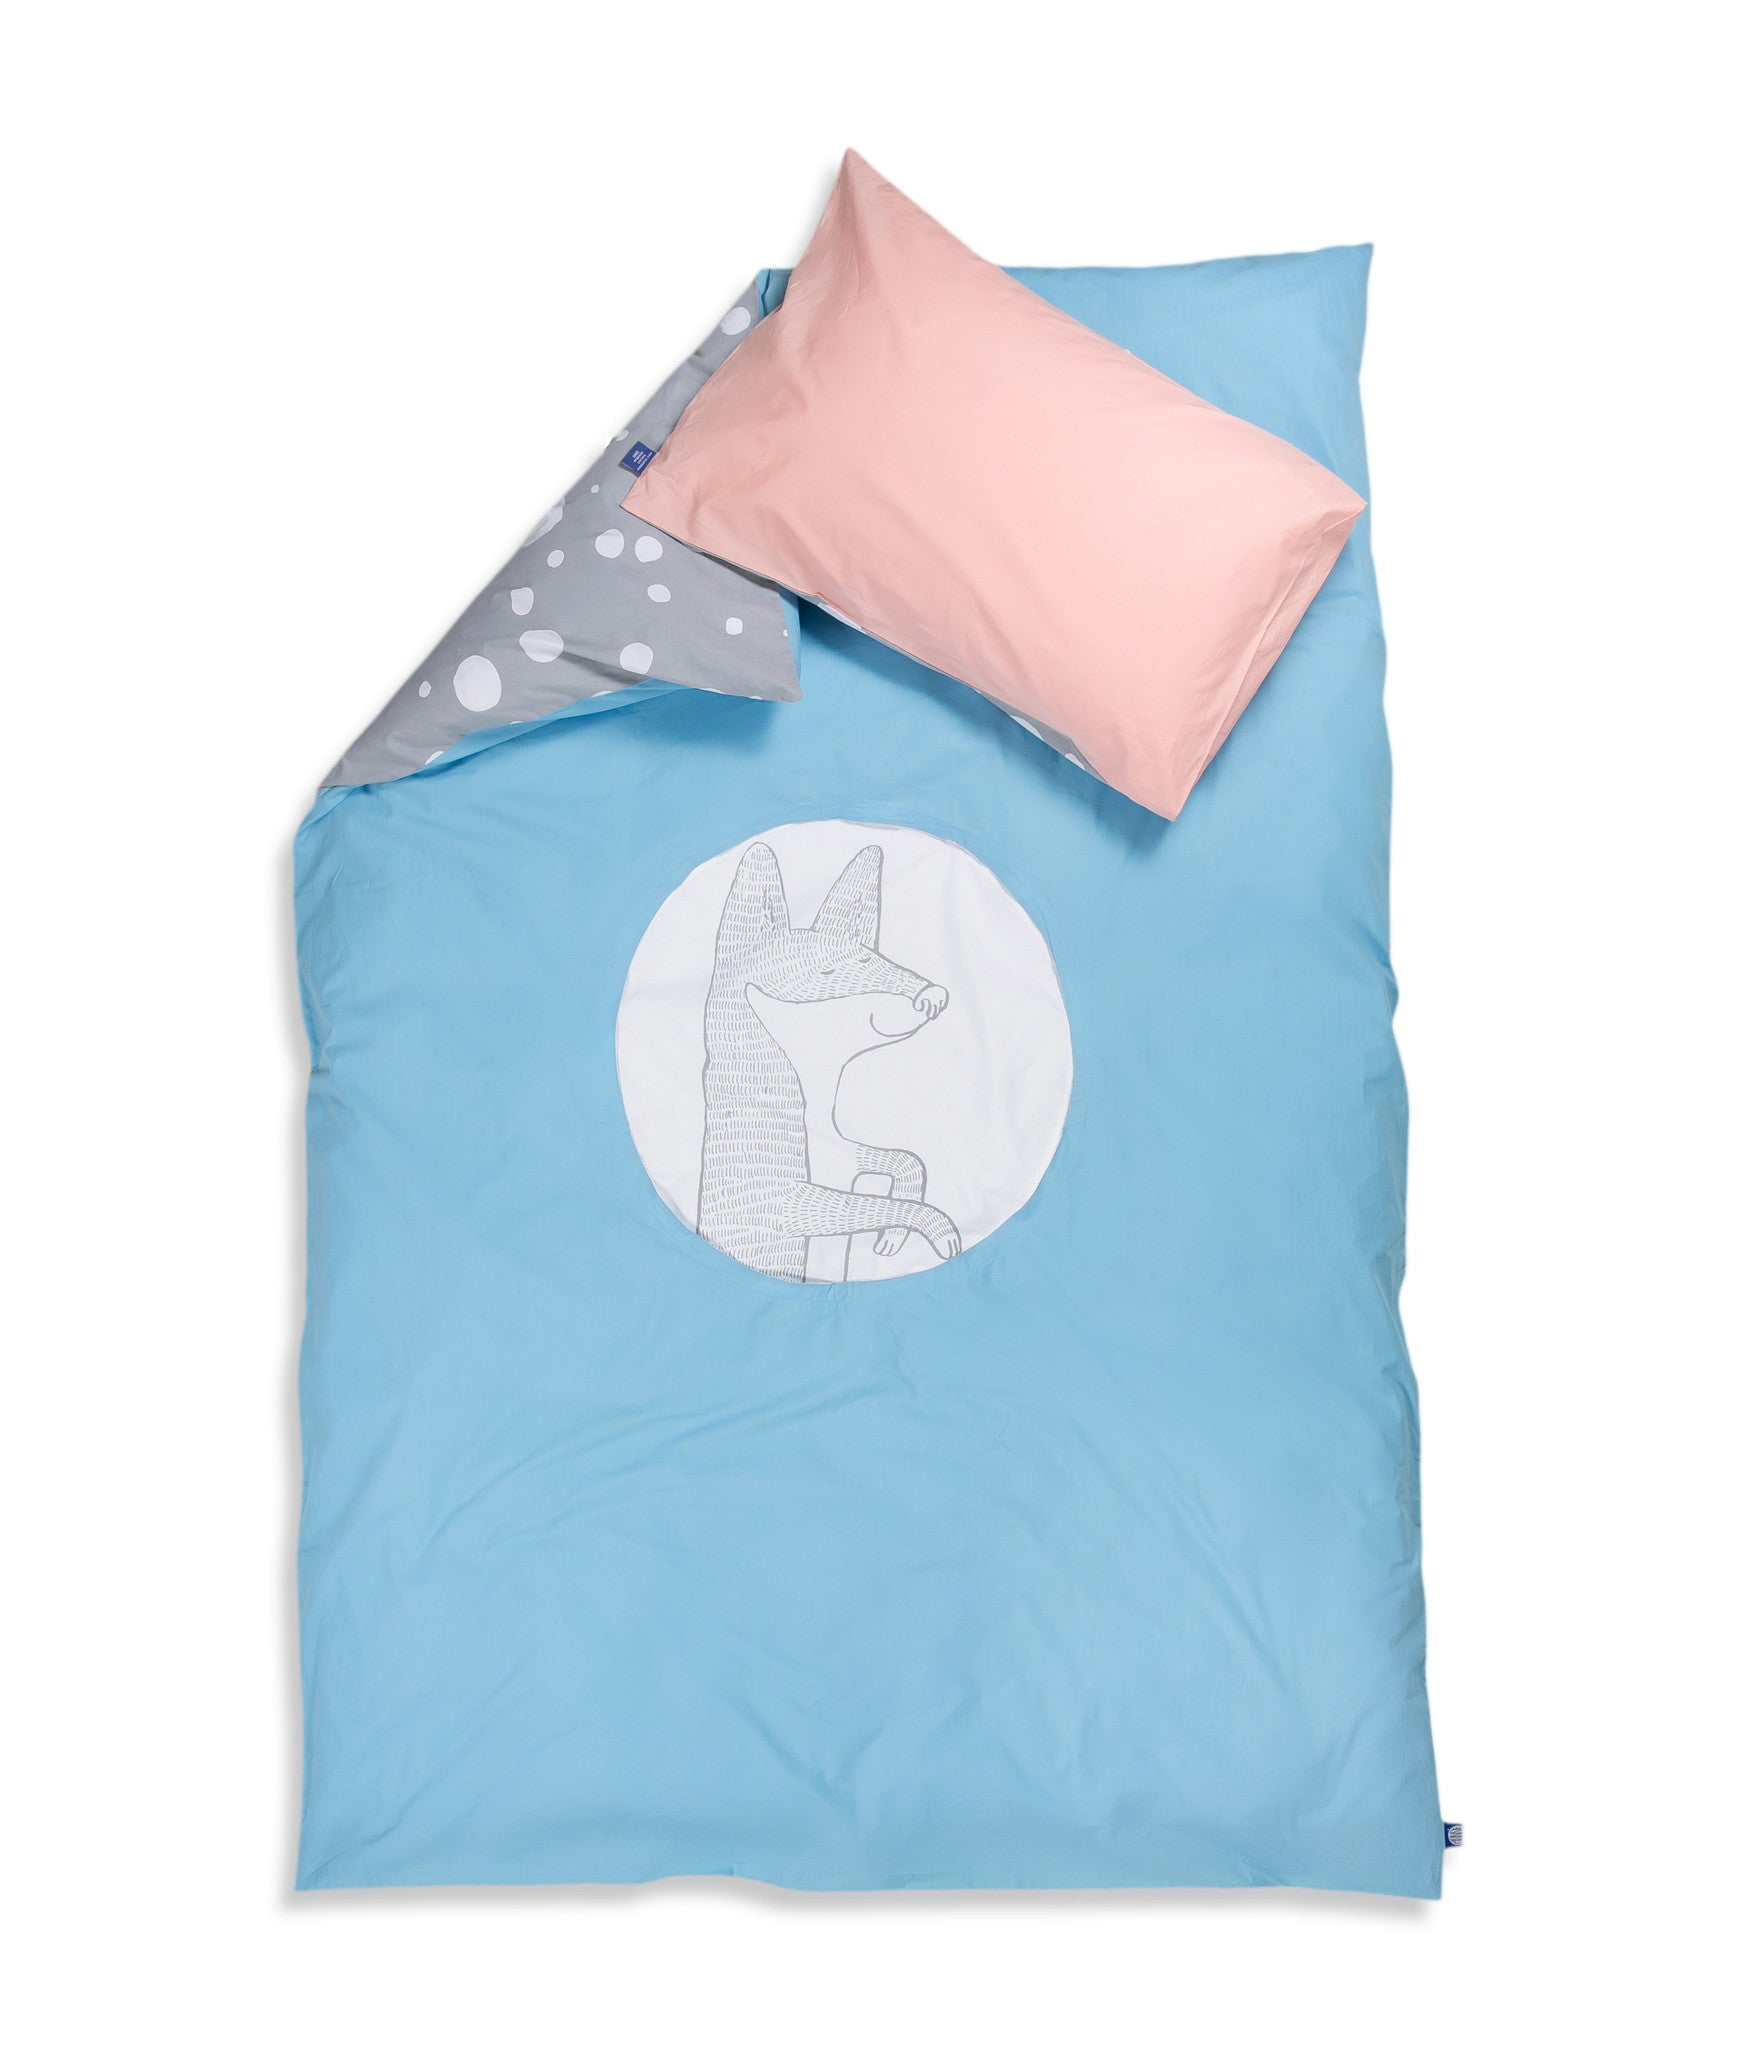 Organic cotton single bed set. Kids bedding. Pink pillow case and blue duvet cover with fox. Dotted pattern bed linen. Customised bedding.